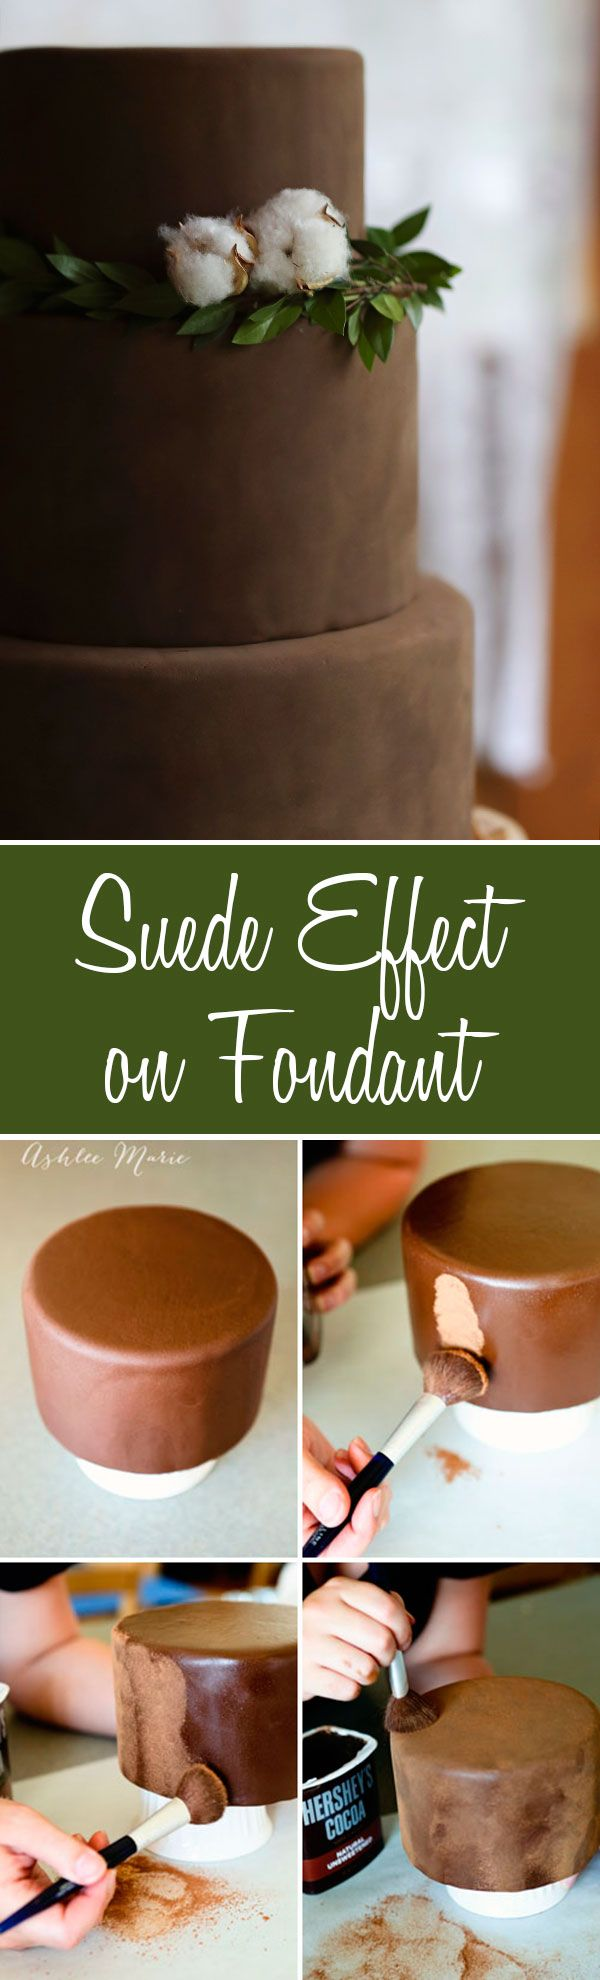 SUEDE EFFECT a tutorial to create this soft suede effect on any cake